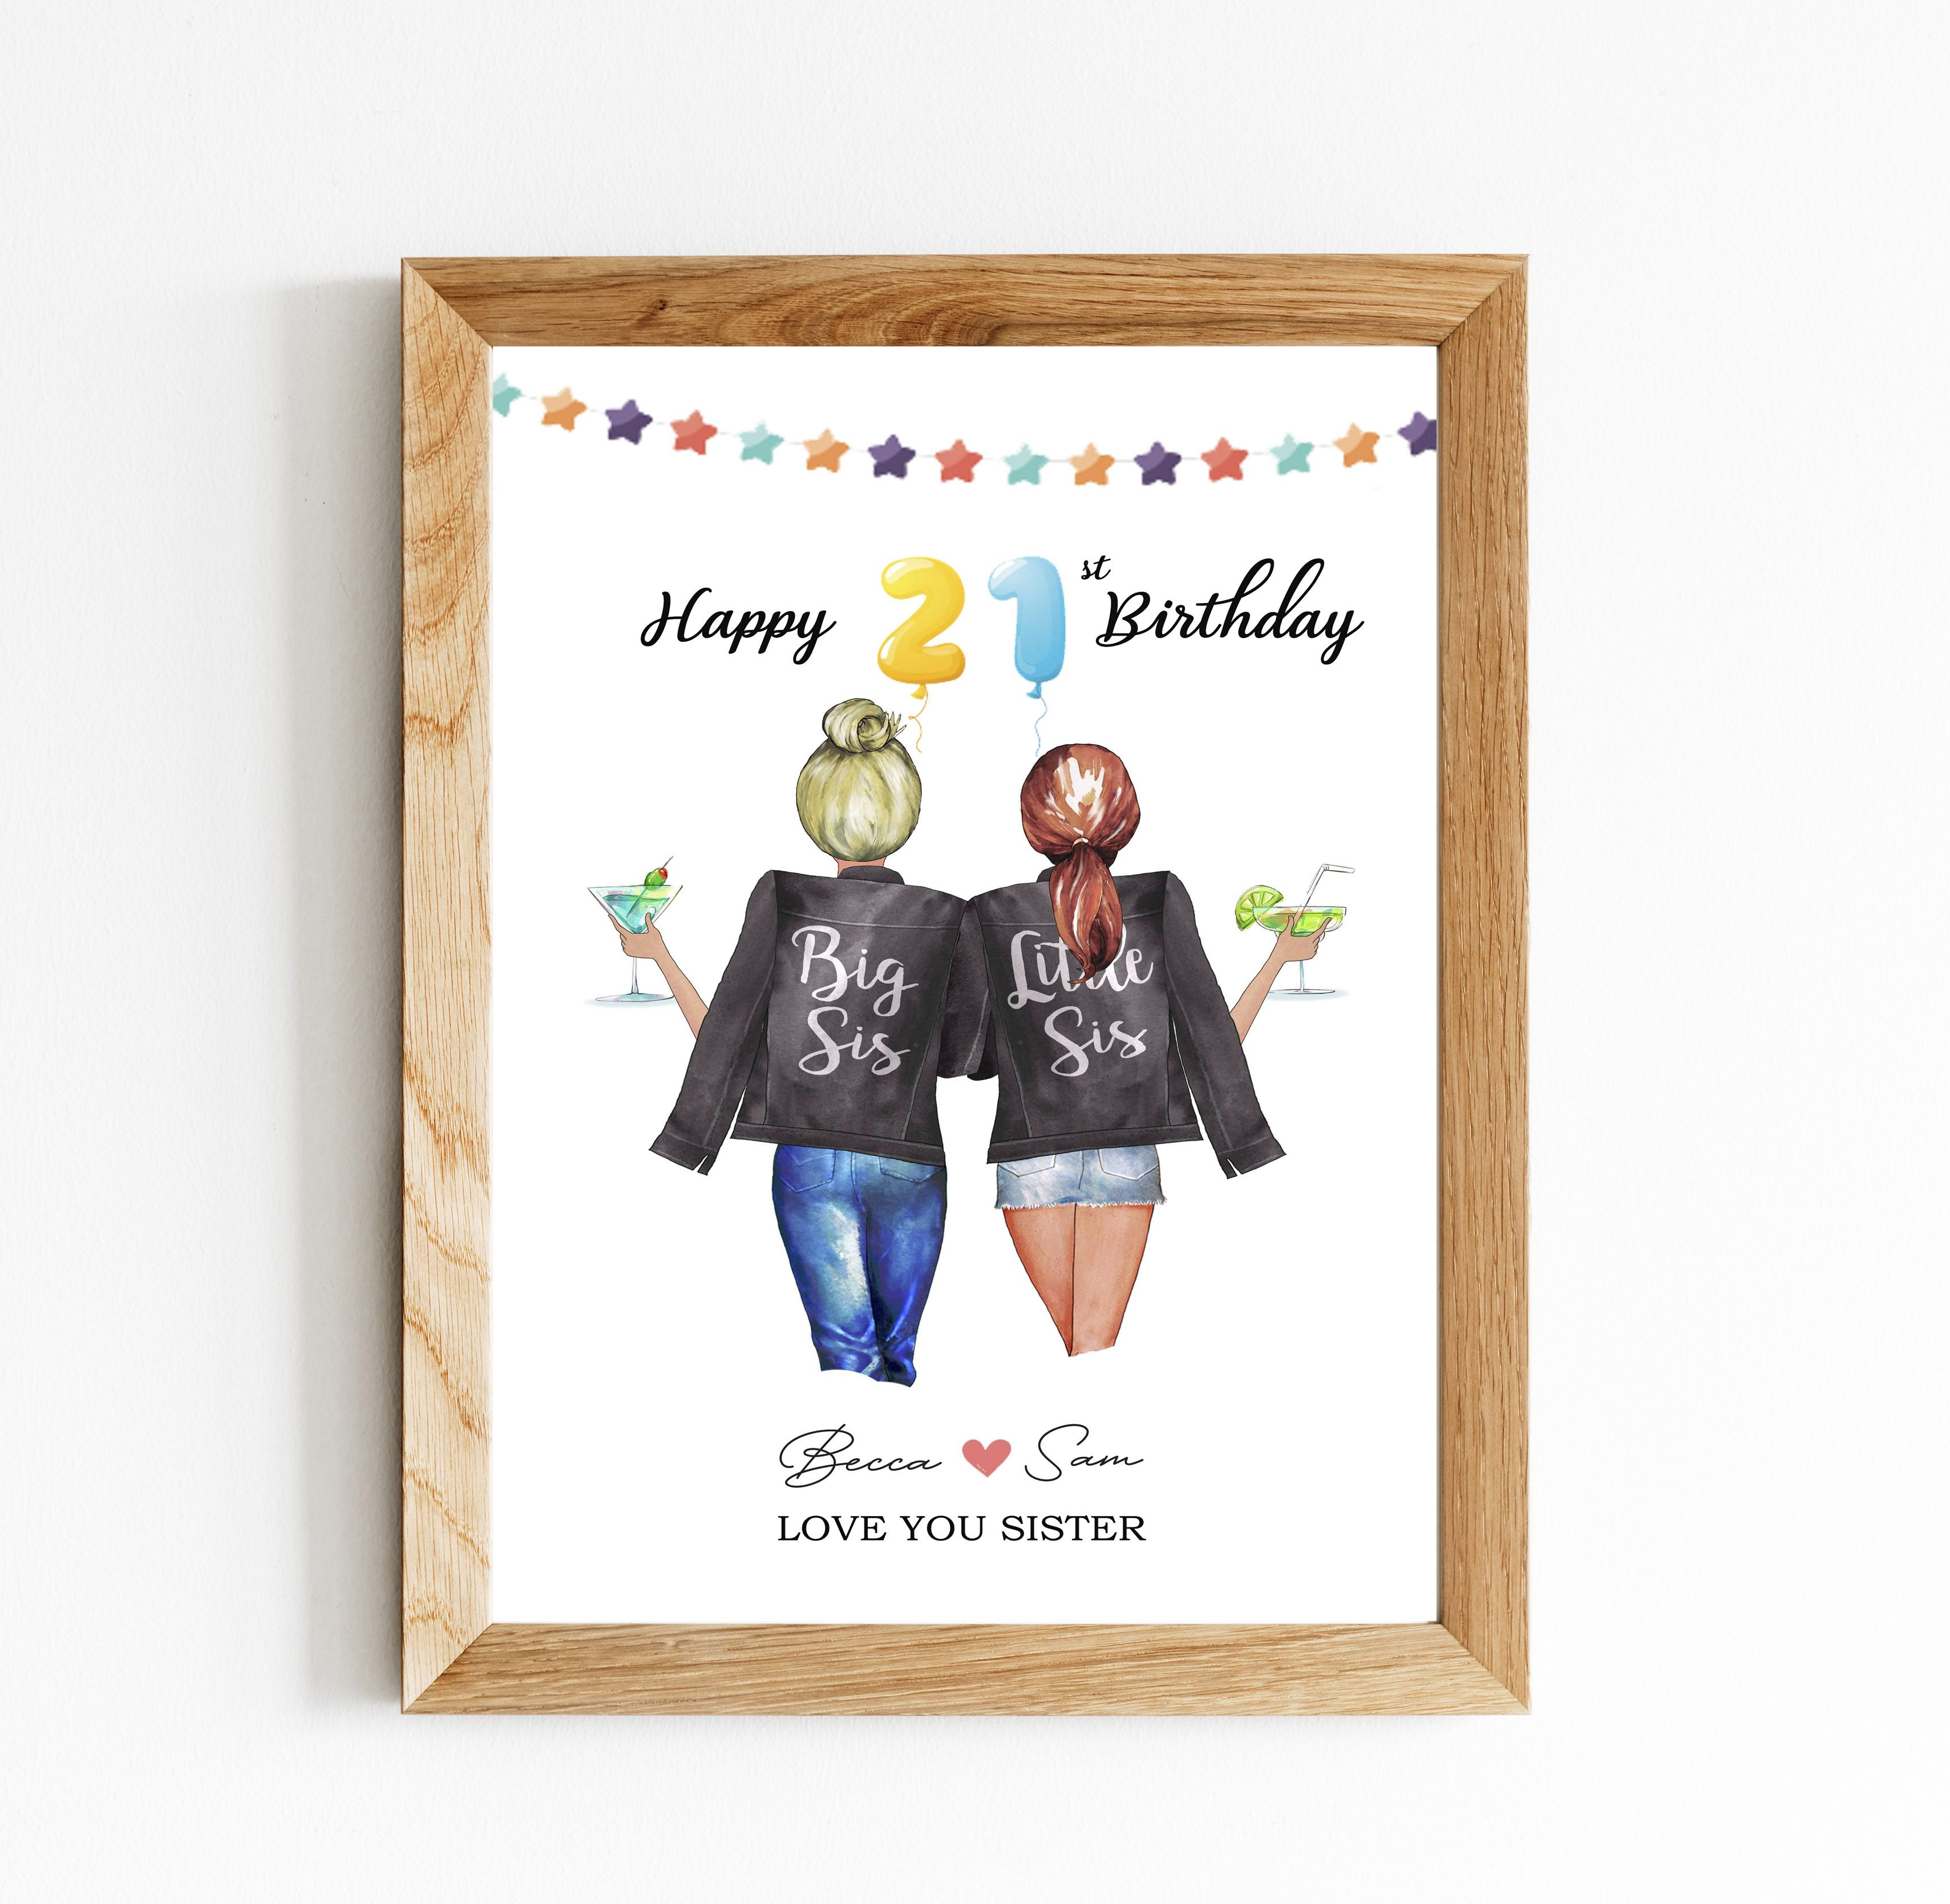 21st Birthday Card Sister Birthday Gift Big Sis Little Sis Print Best Friend Gift Personalized 21st Birthday Cards Sister Birthday Card Big Birthday Cards